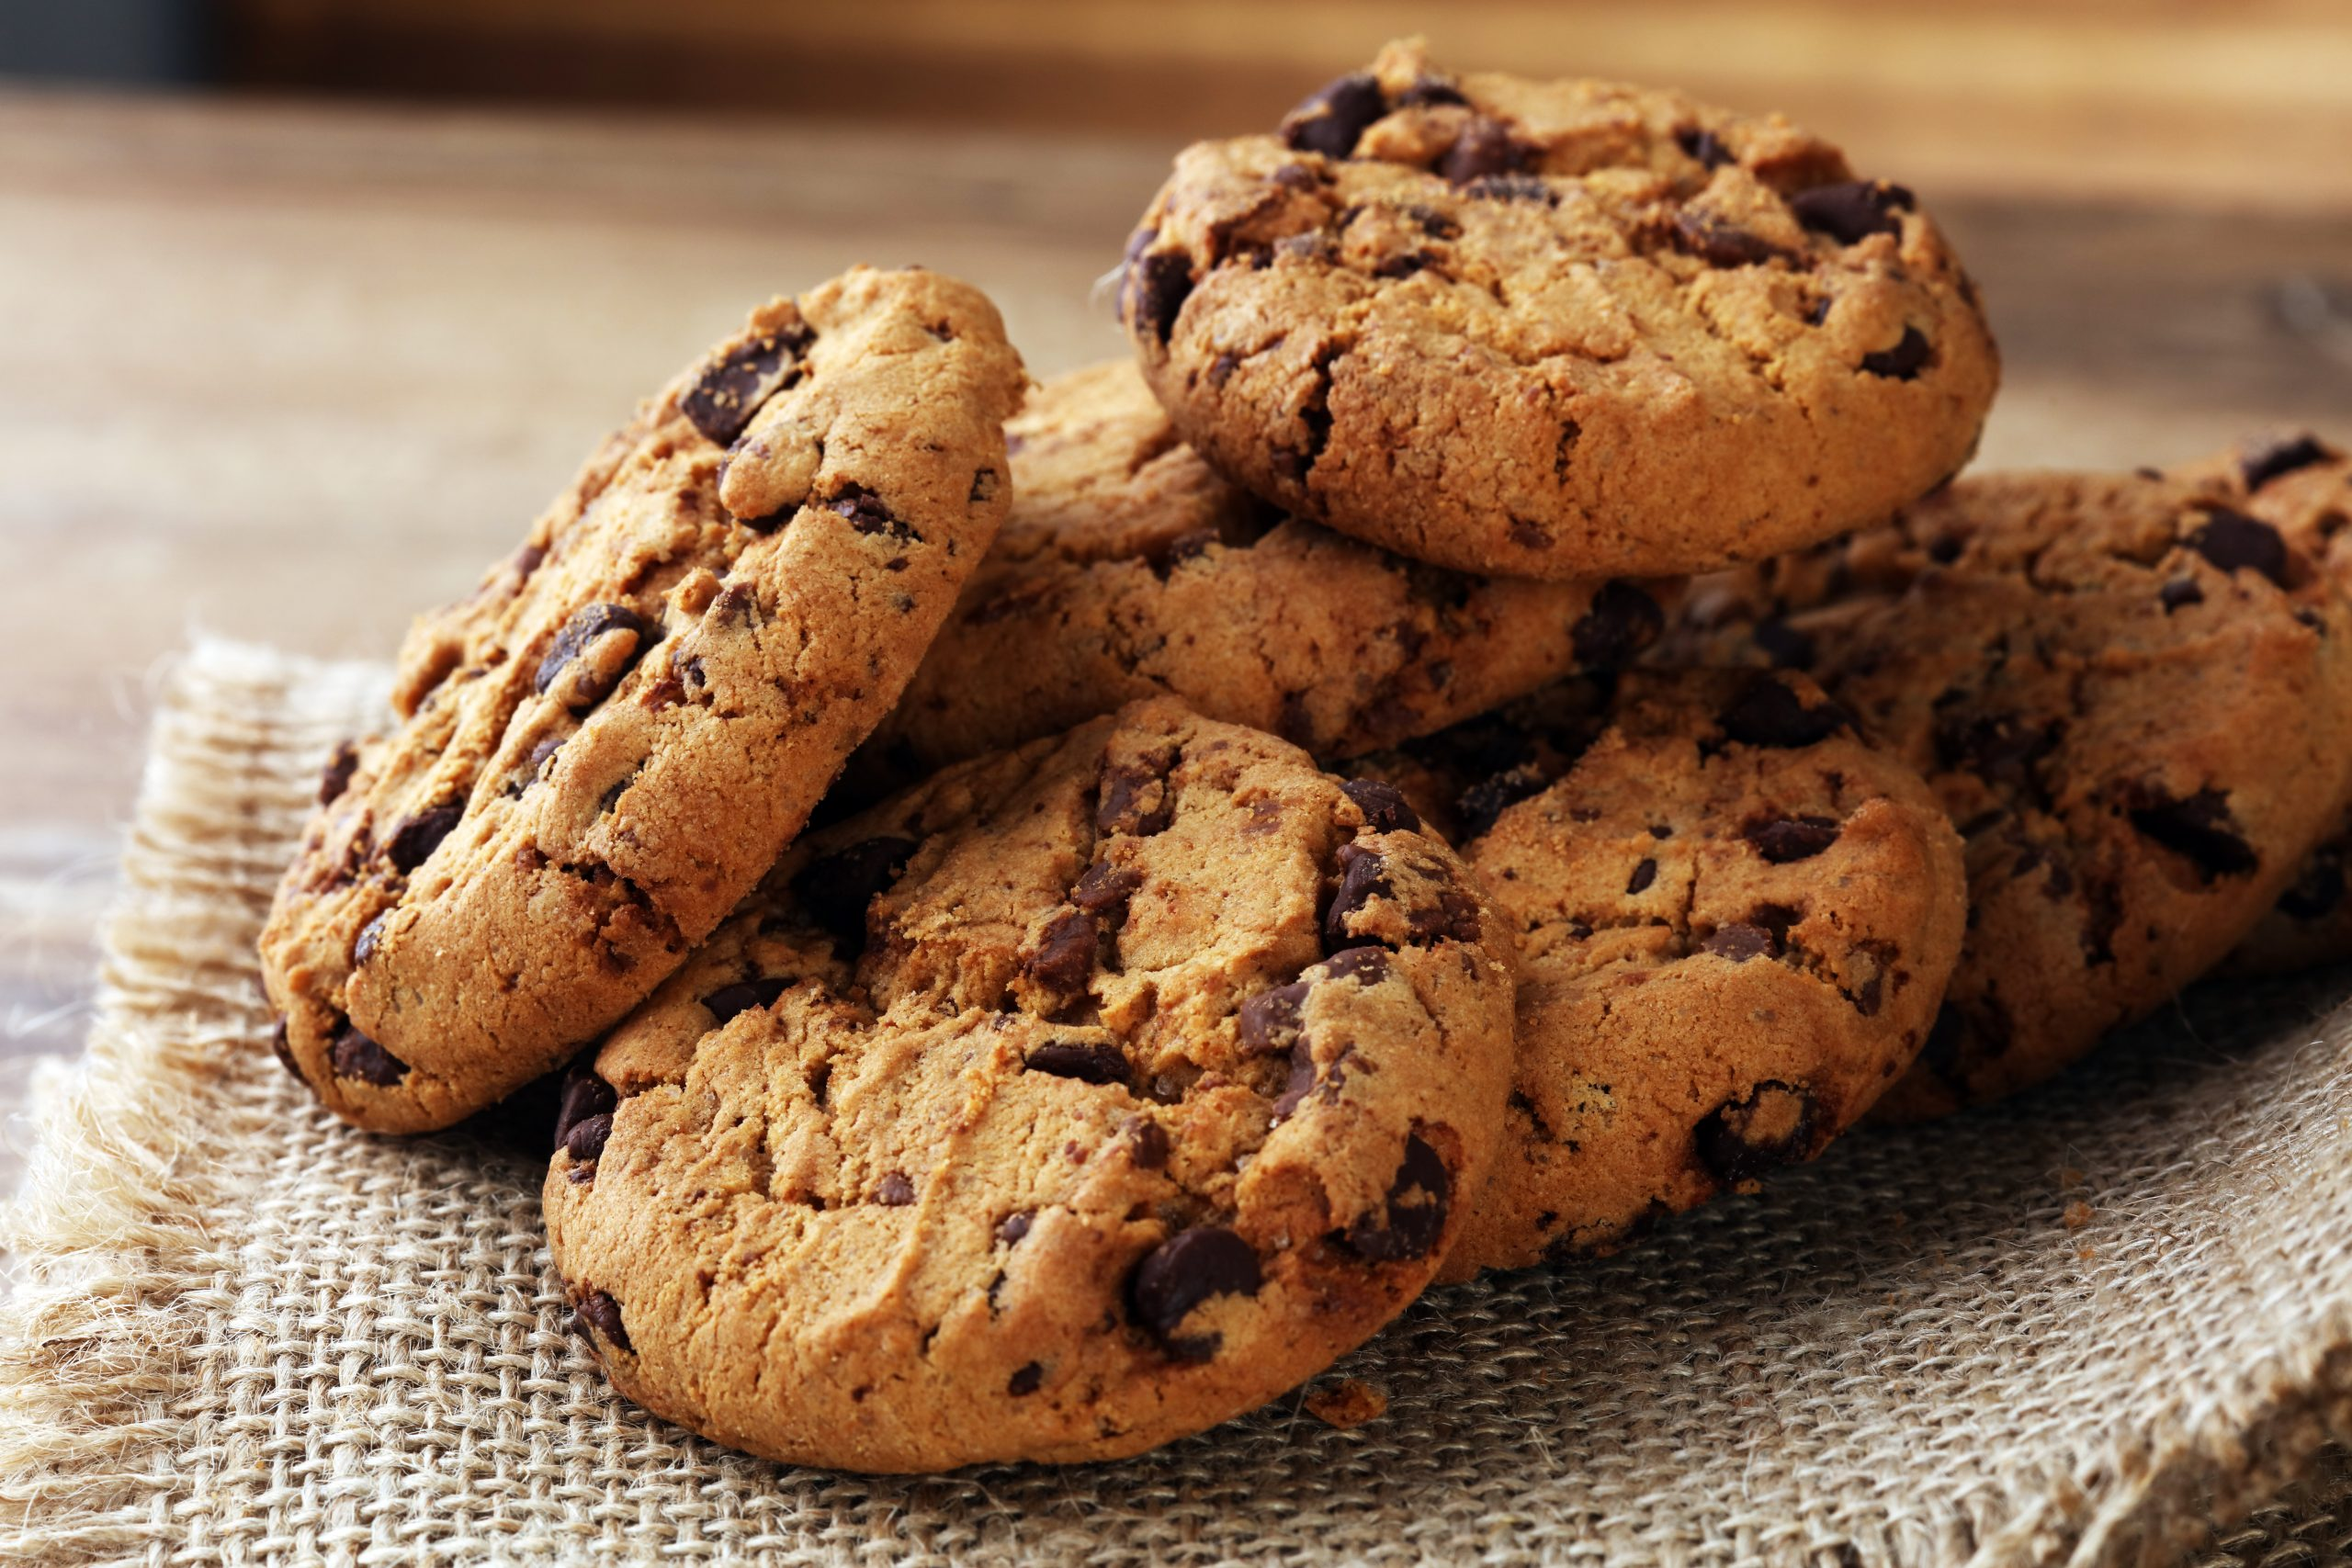 RECETTE COOKIES AU THERMOMIX